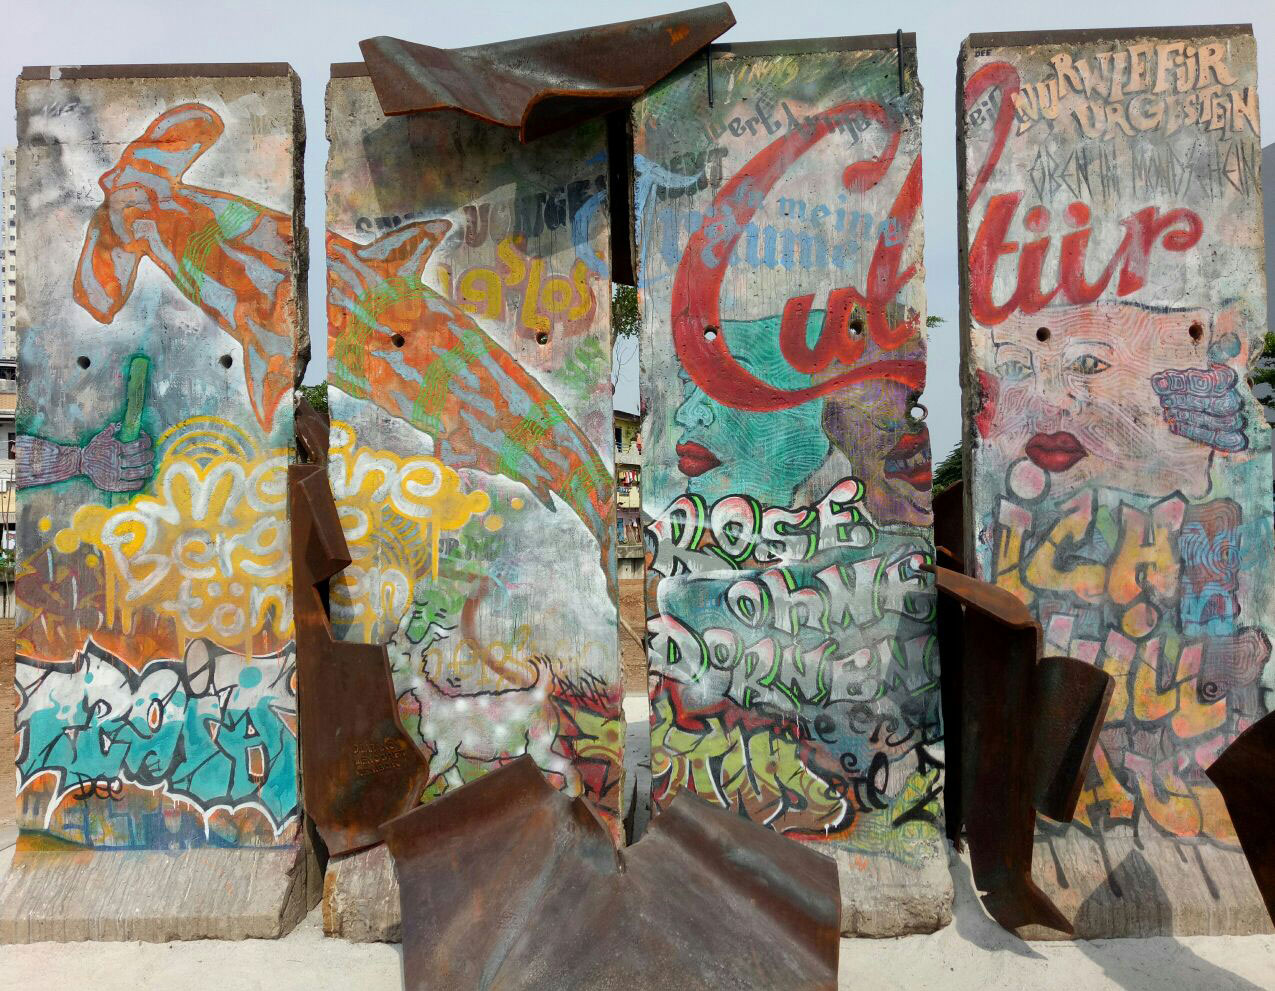 Four segments of the Berlin Wall covered in colourful paintings and adorned with metal figures, climbing over the wall and slipping through the spaces between the segments.